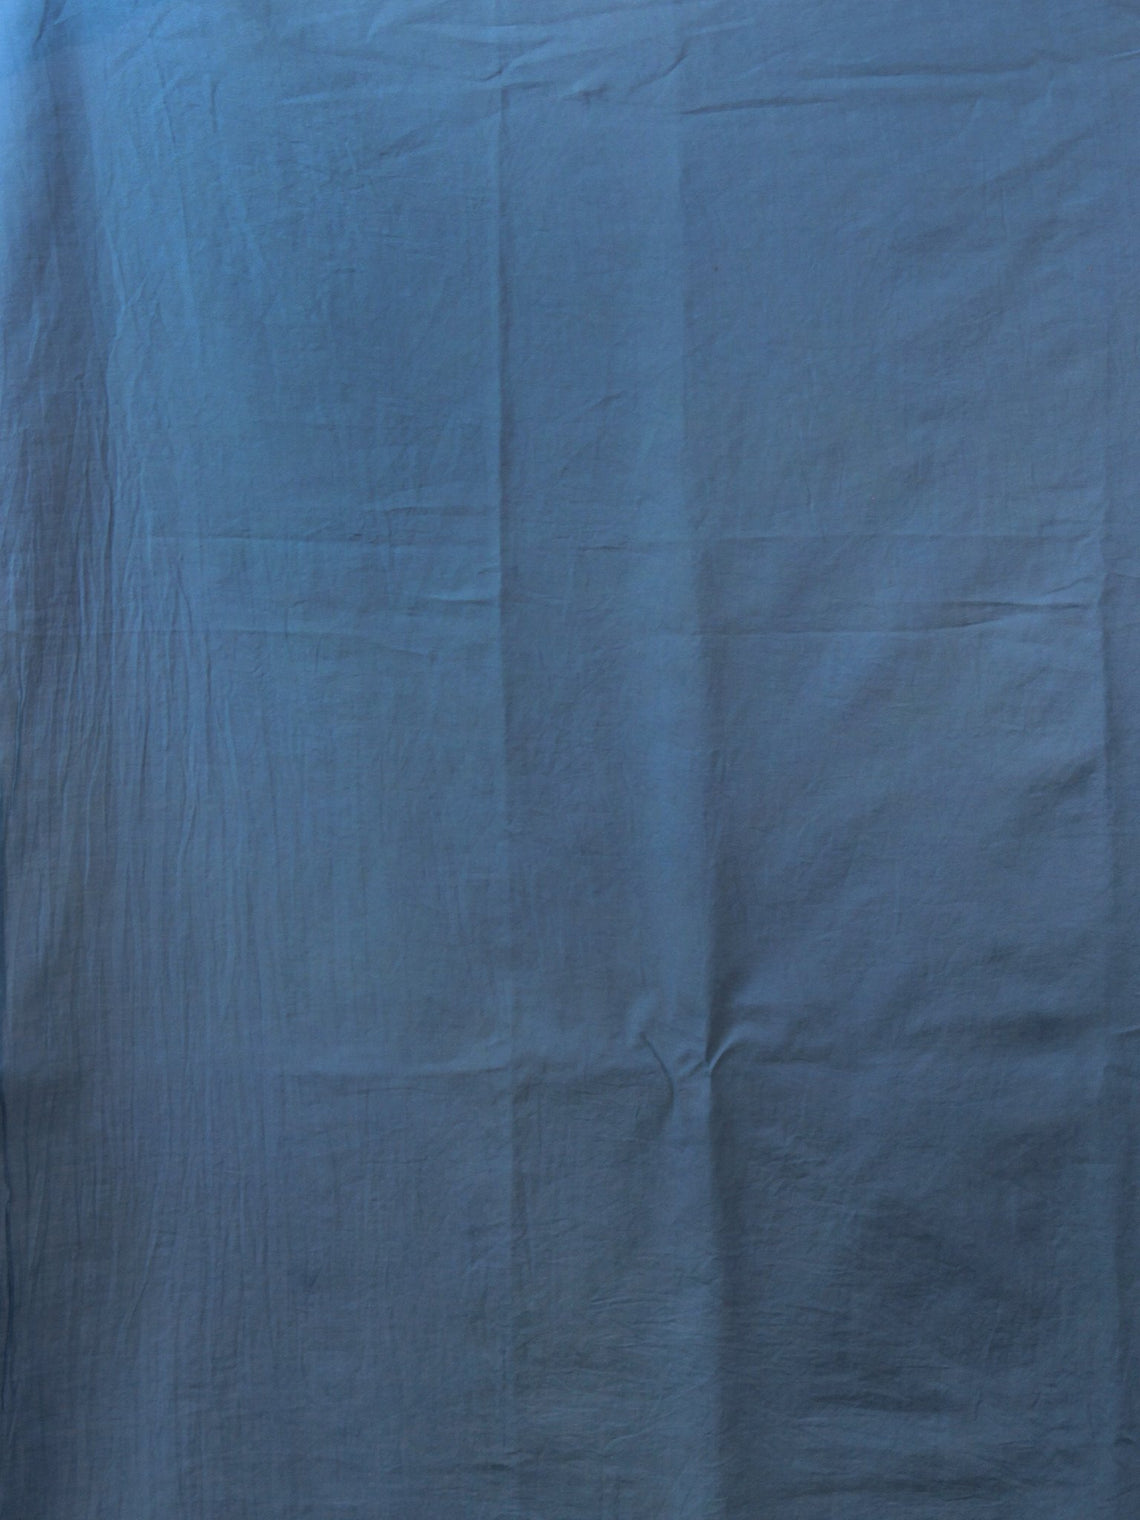 Peanut Brown Teal Blue Ivory Hand Shibori Dyed Cotton Saree - S031702020